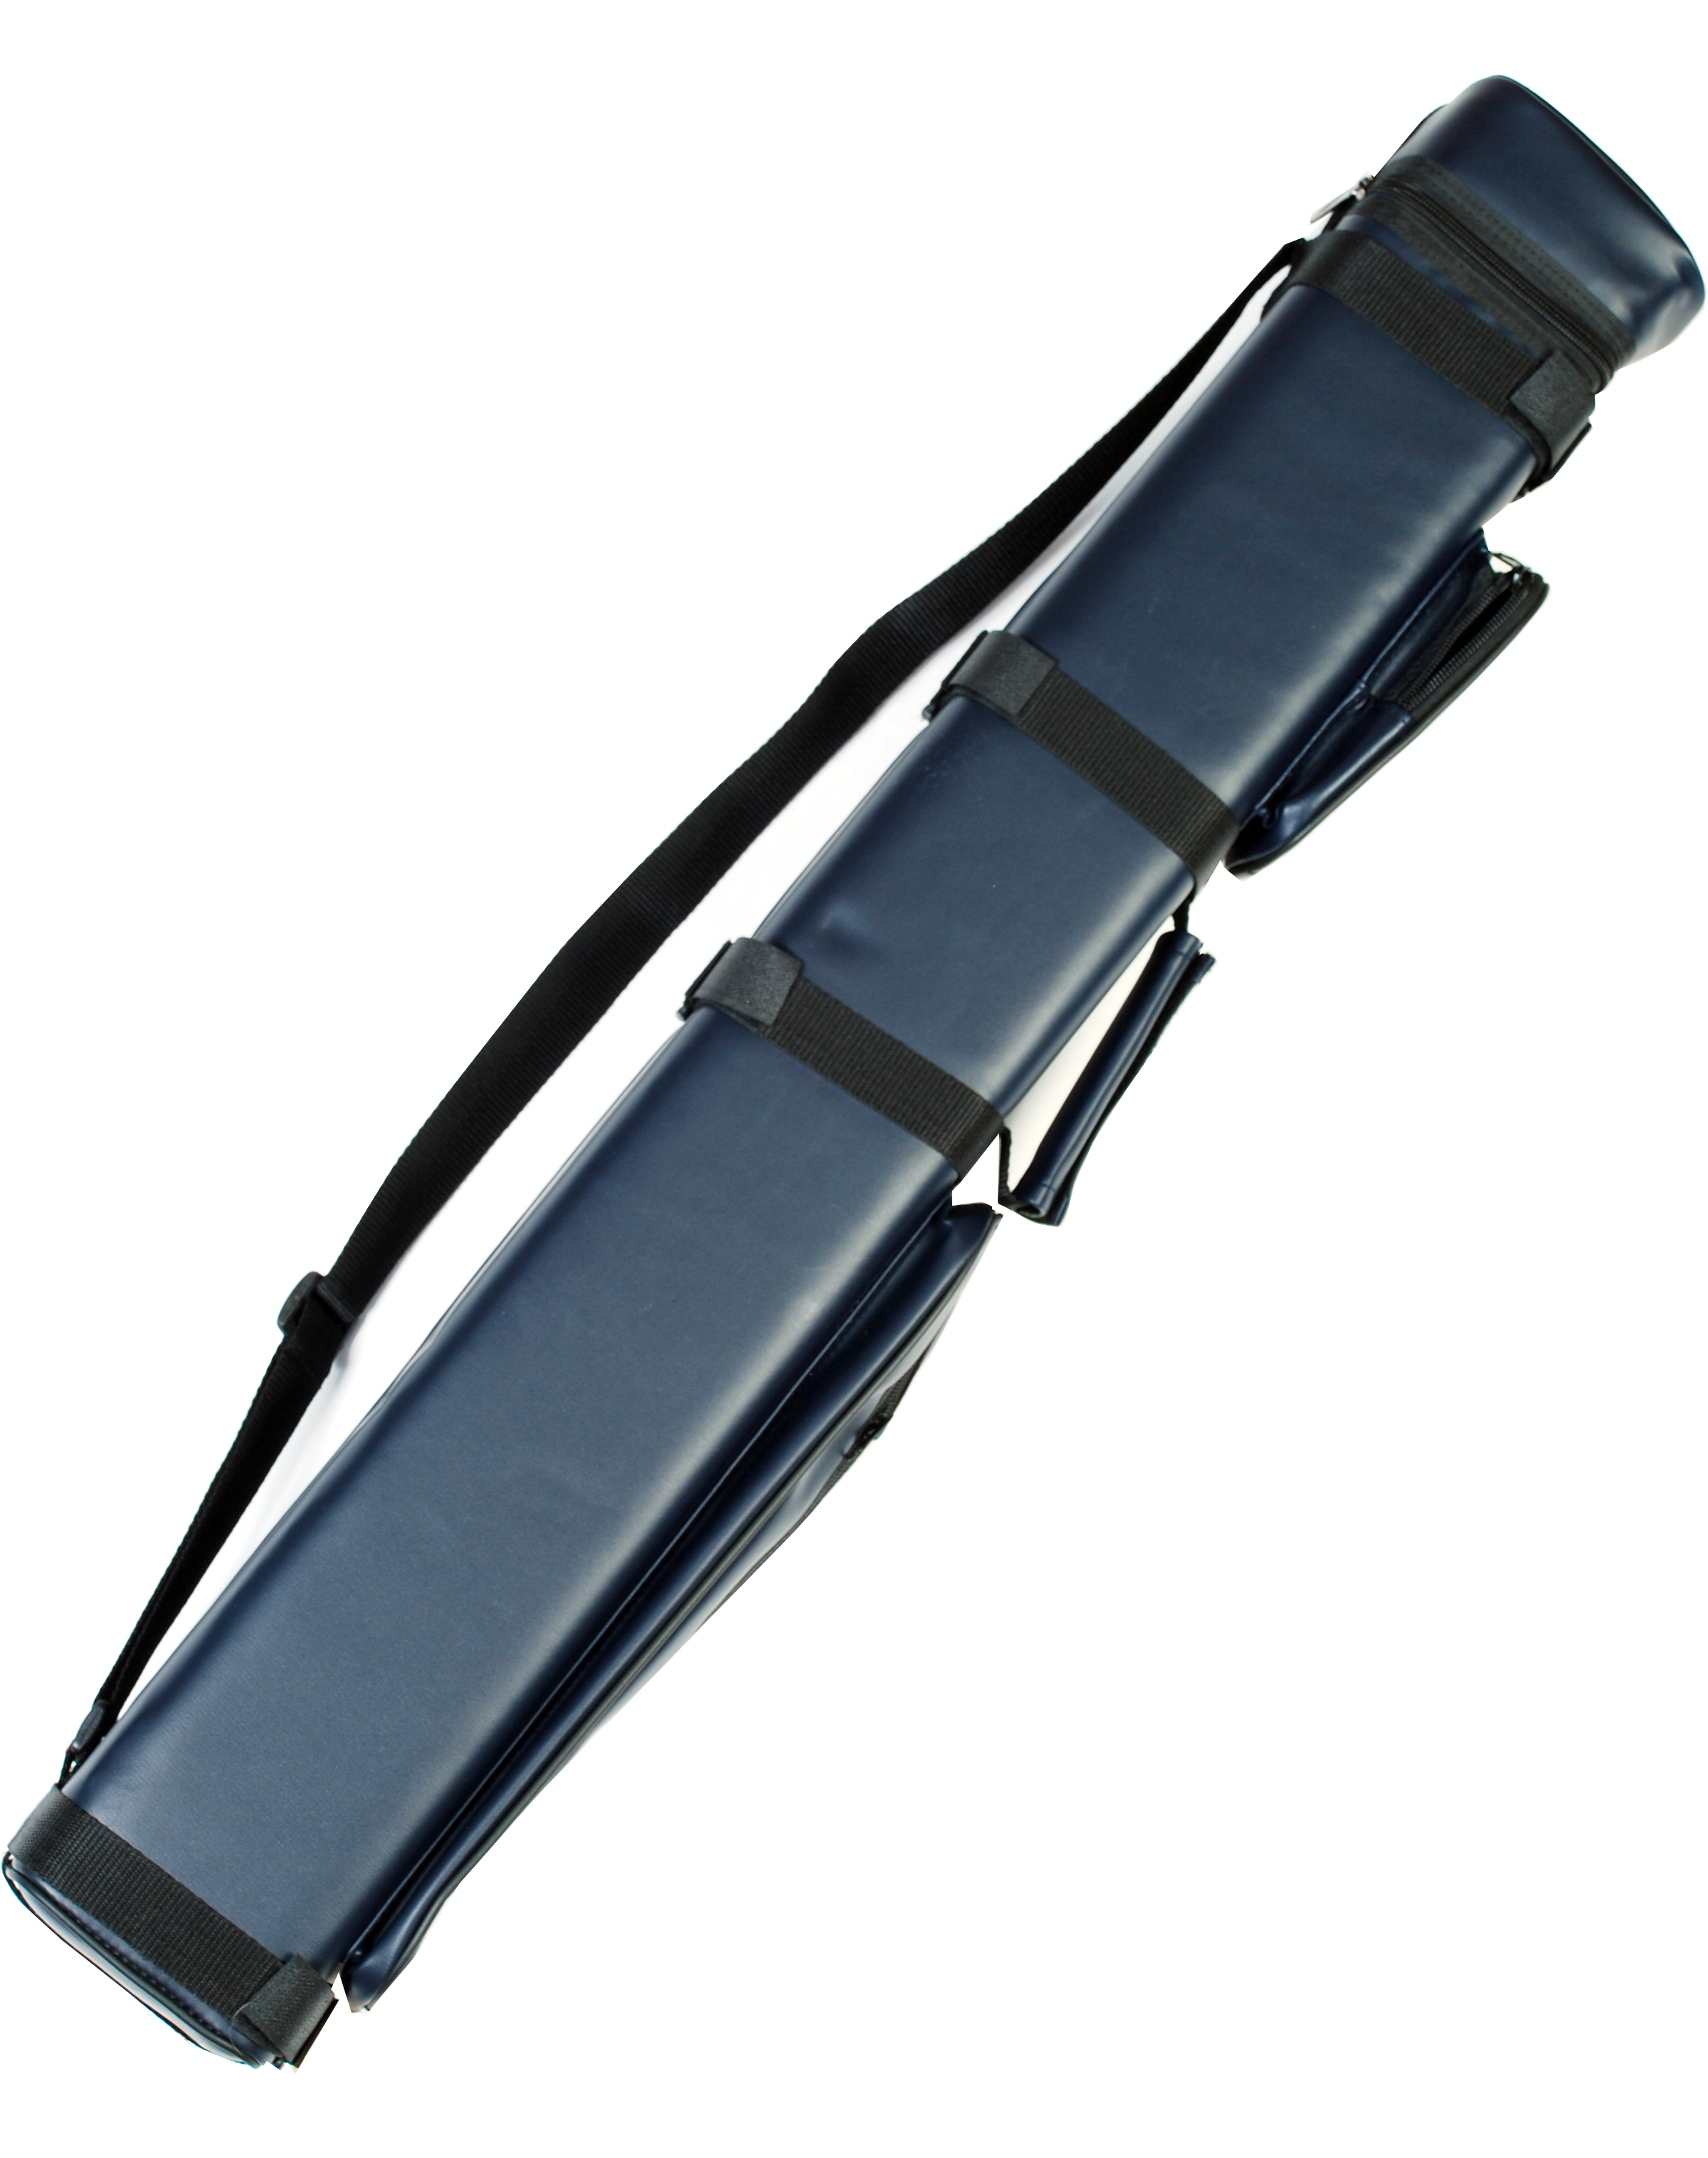 3X6 Hard Billiard Stick Pool Cue Case Blue 3 X 6 by